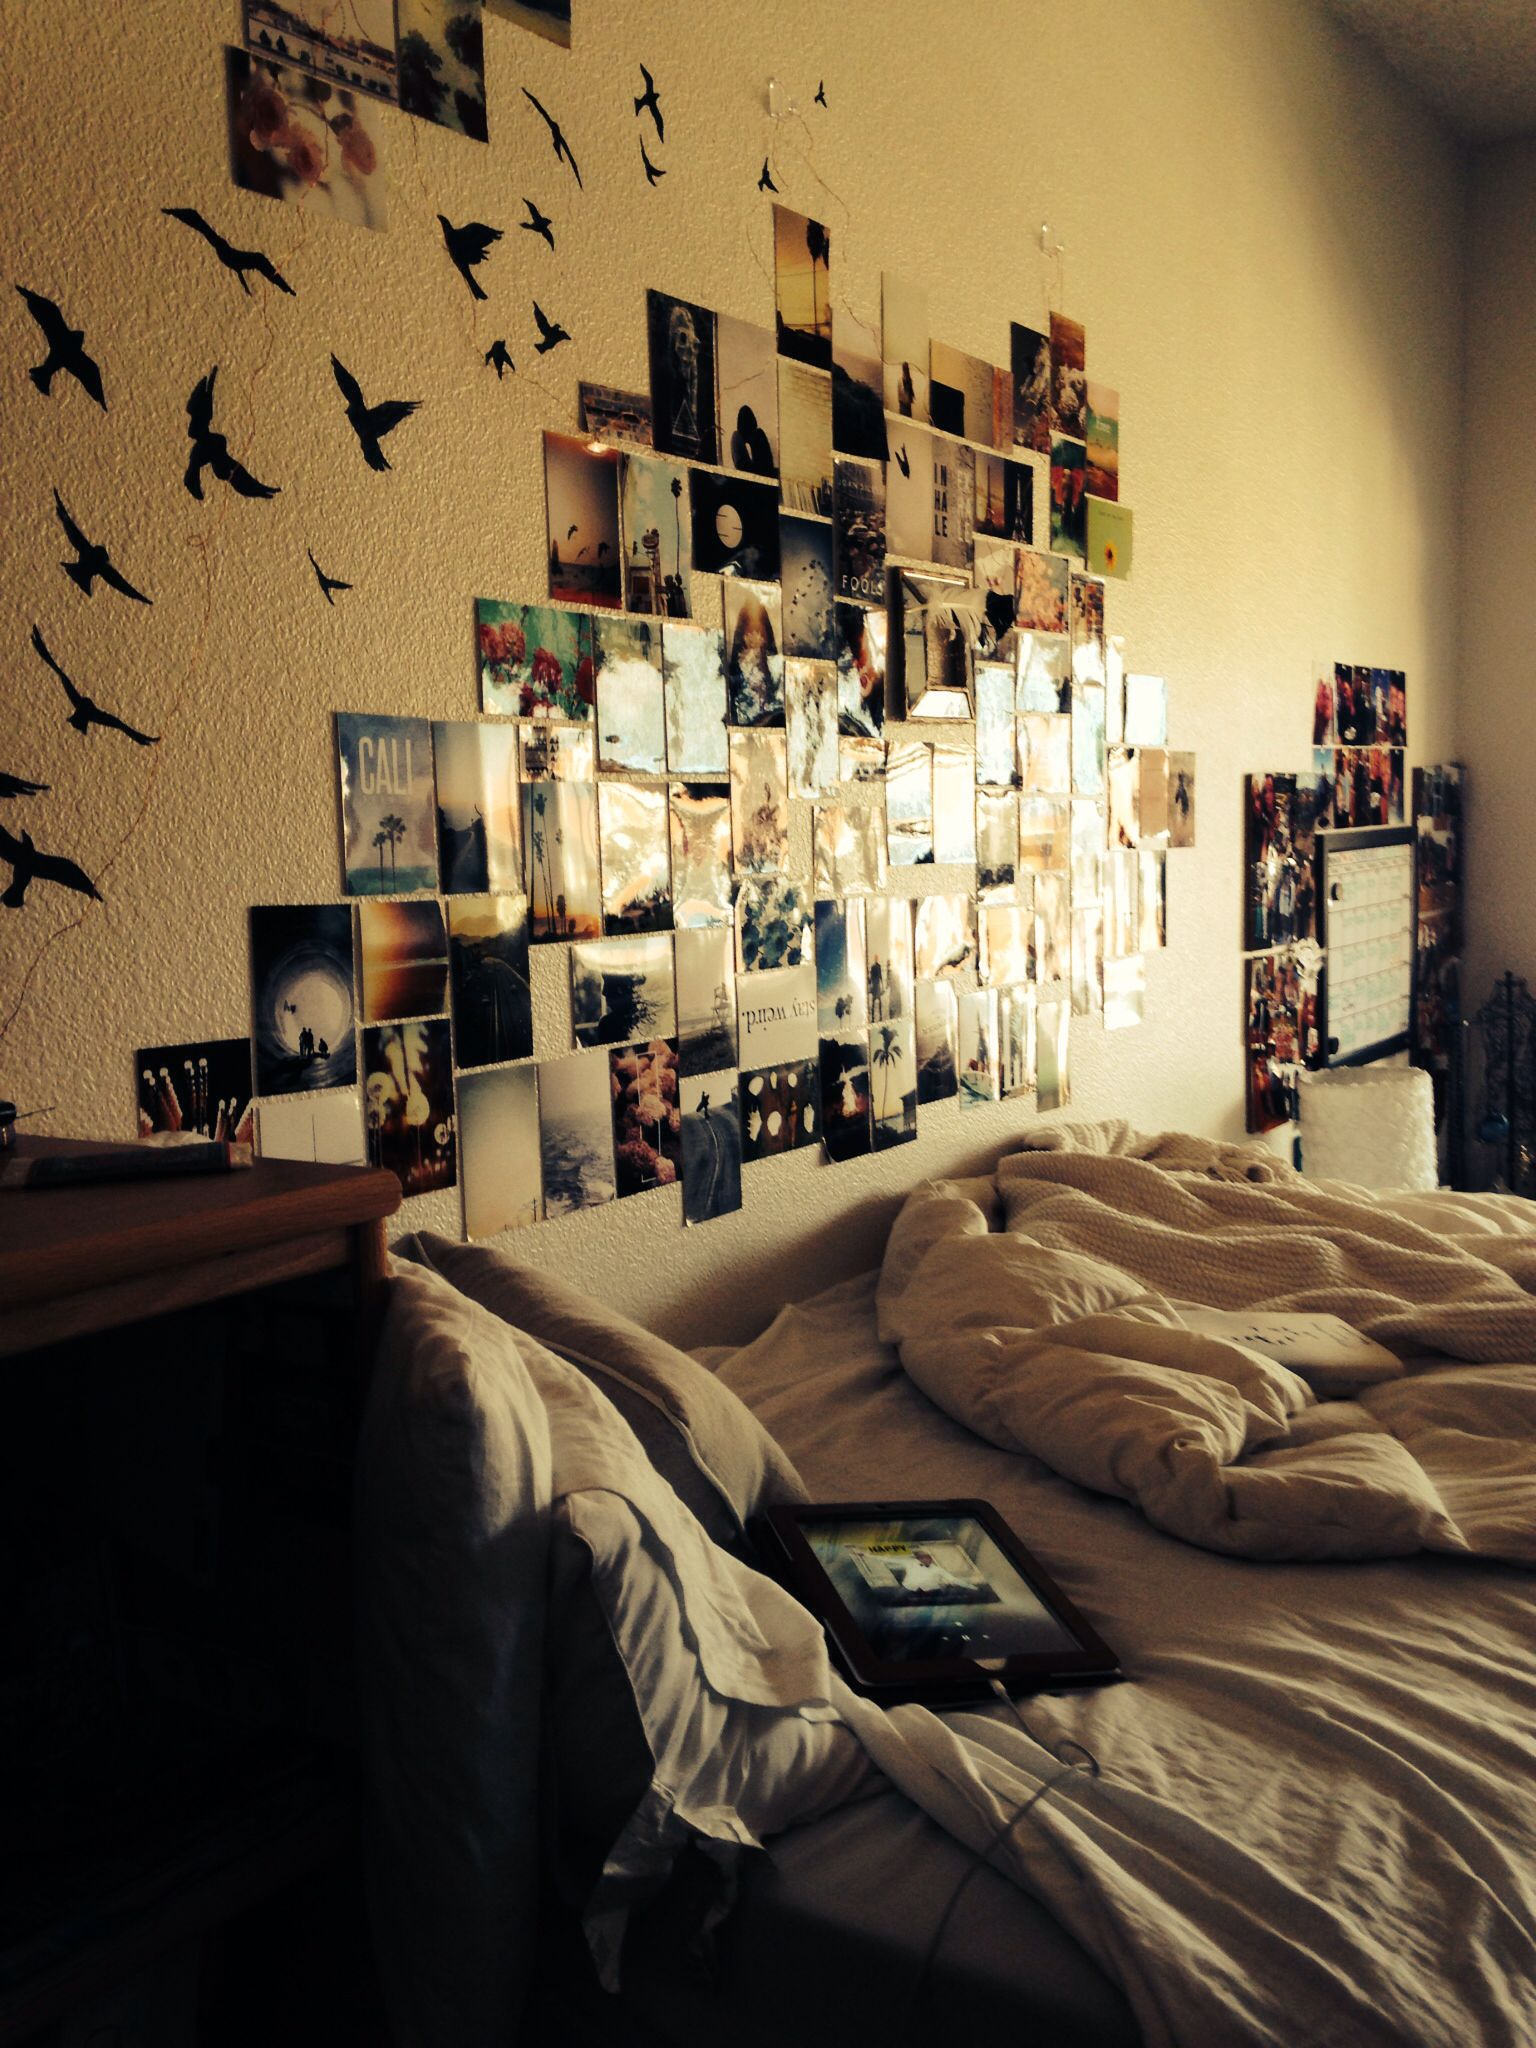 Decorate Dorm Room: 32 Ideas For Decorating Dorm Rooms, Courtesy Of The